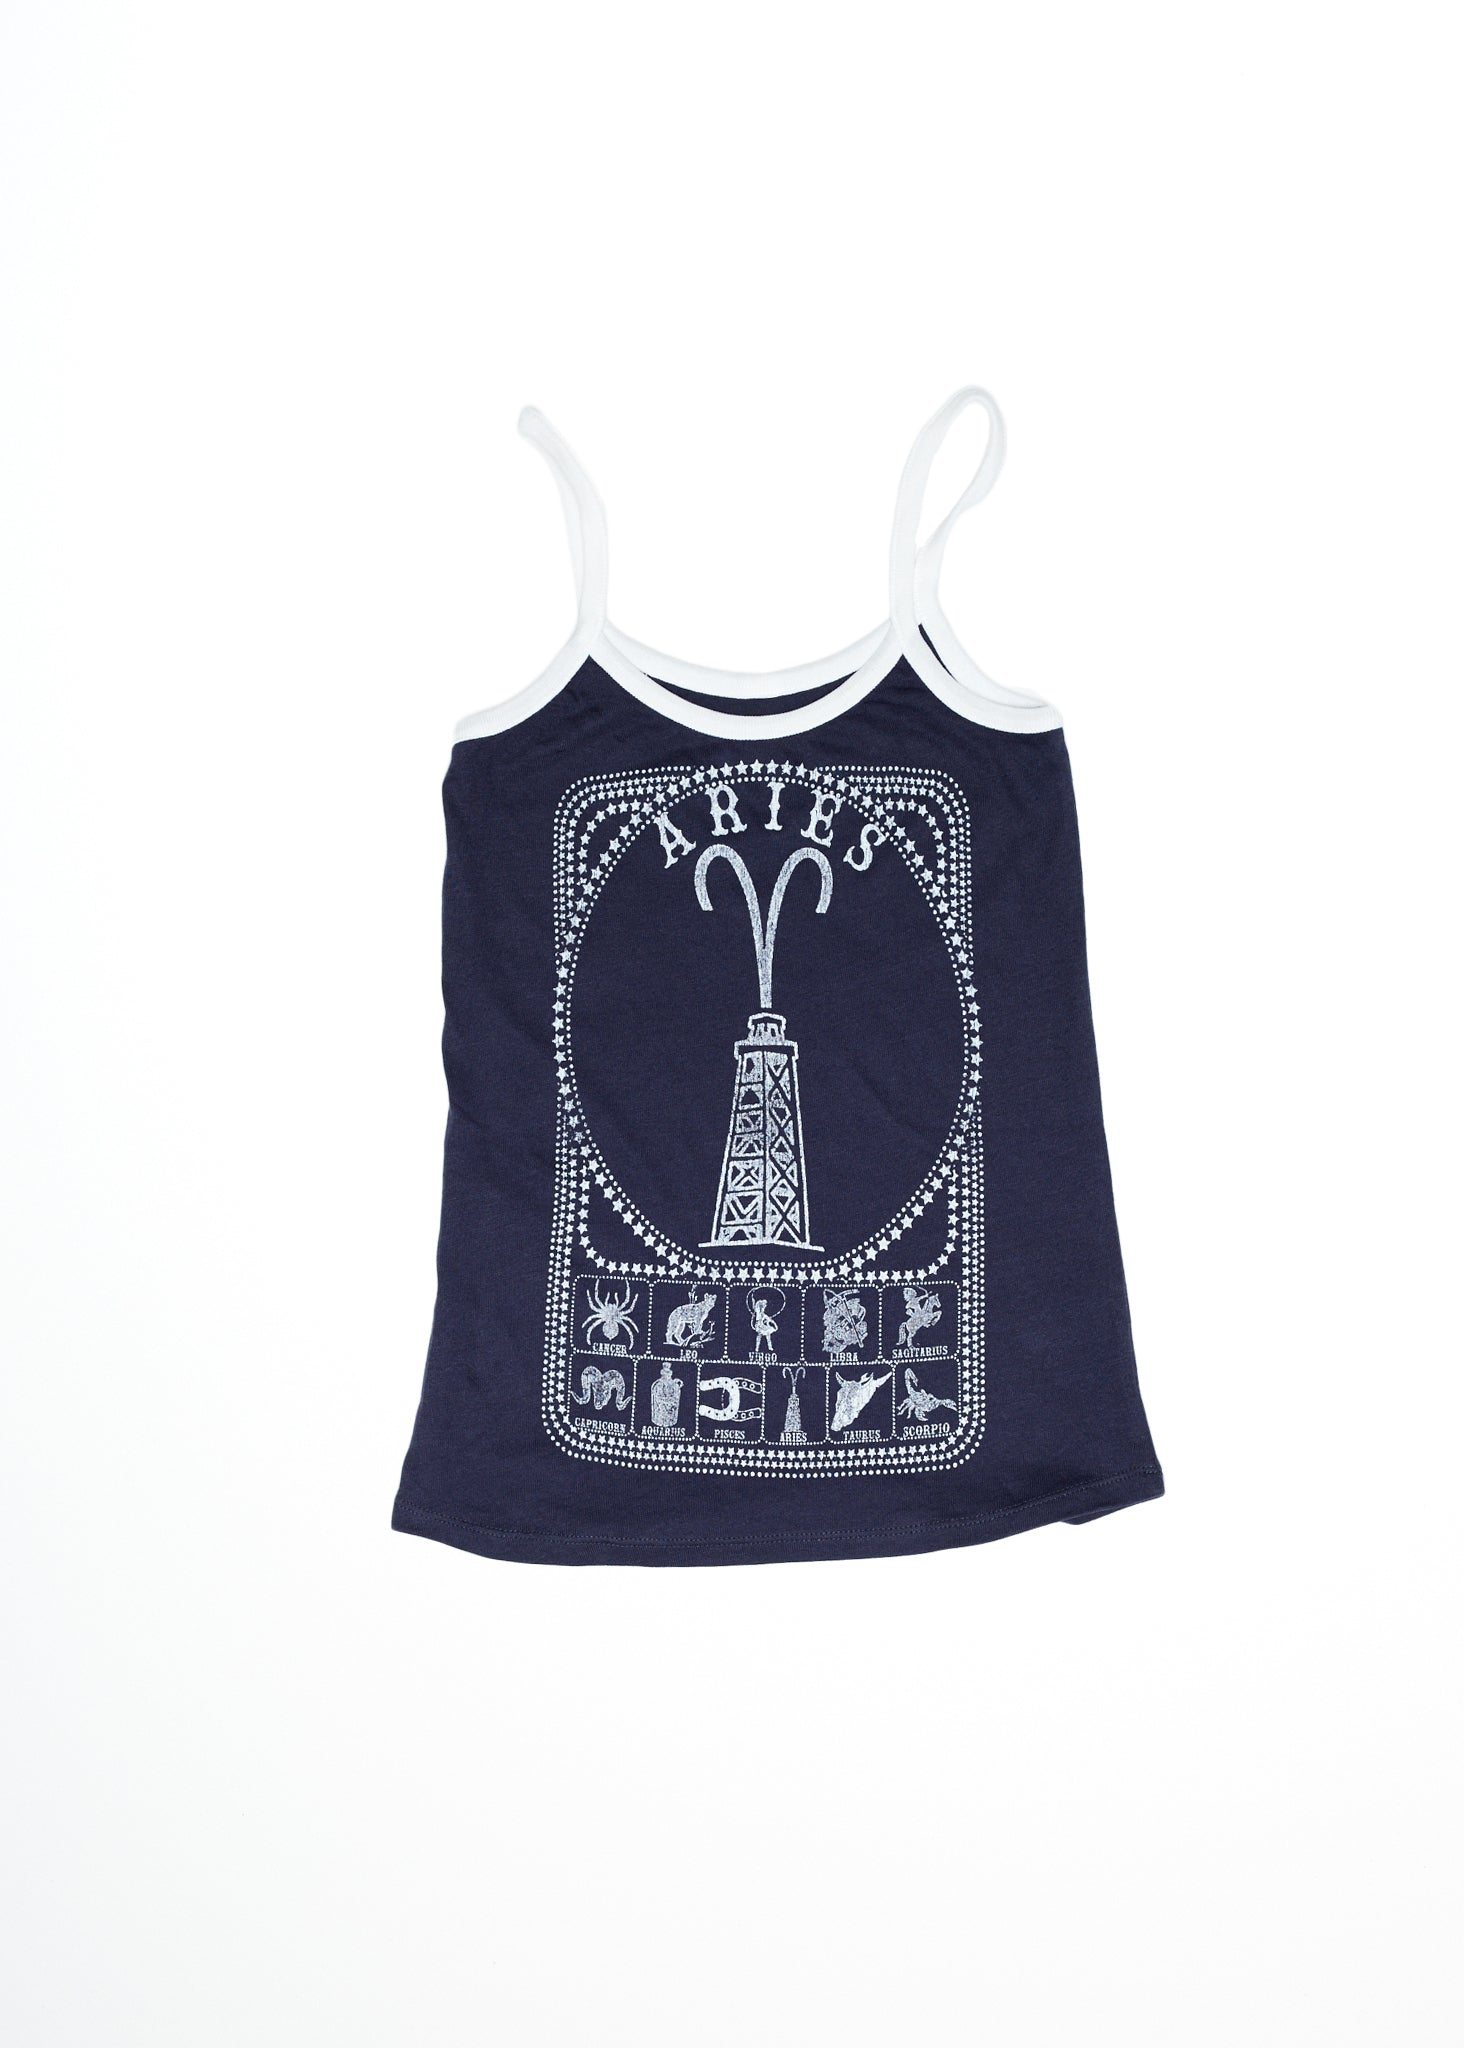 Aries Zodiac Contrast Tank - Women's Lace Tank - Midnight Rider